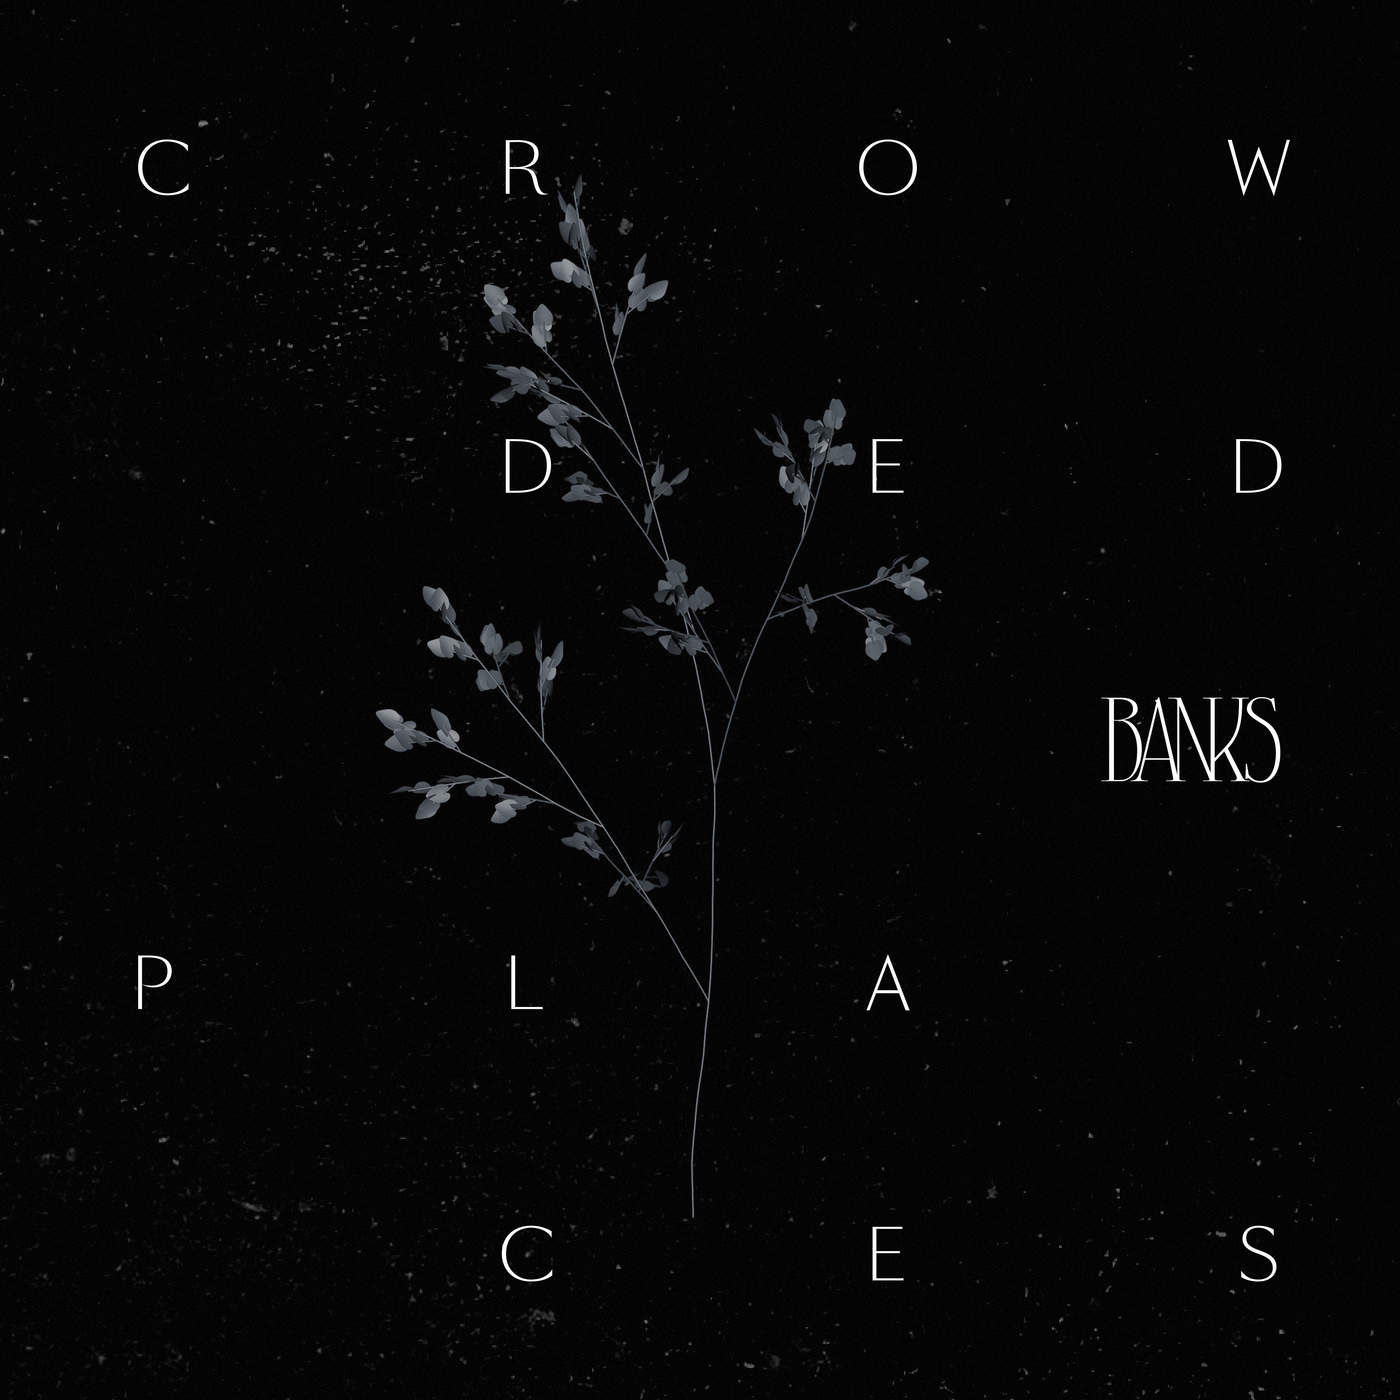 Banks - Crowded Places - Single Cover